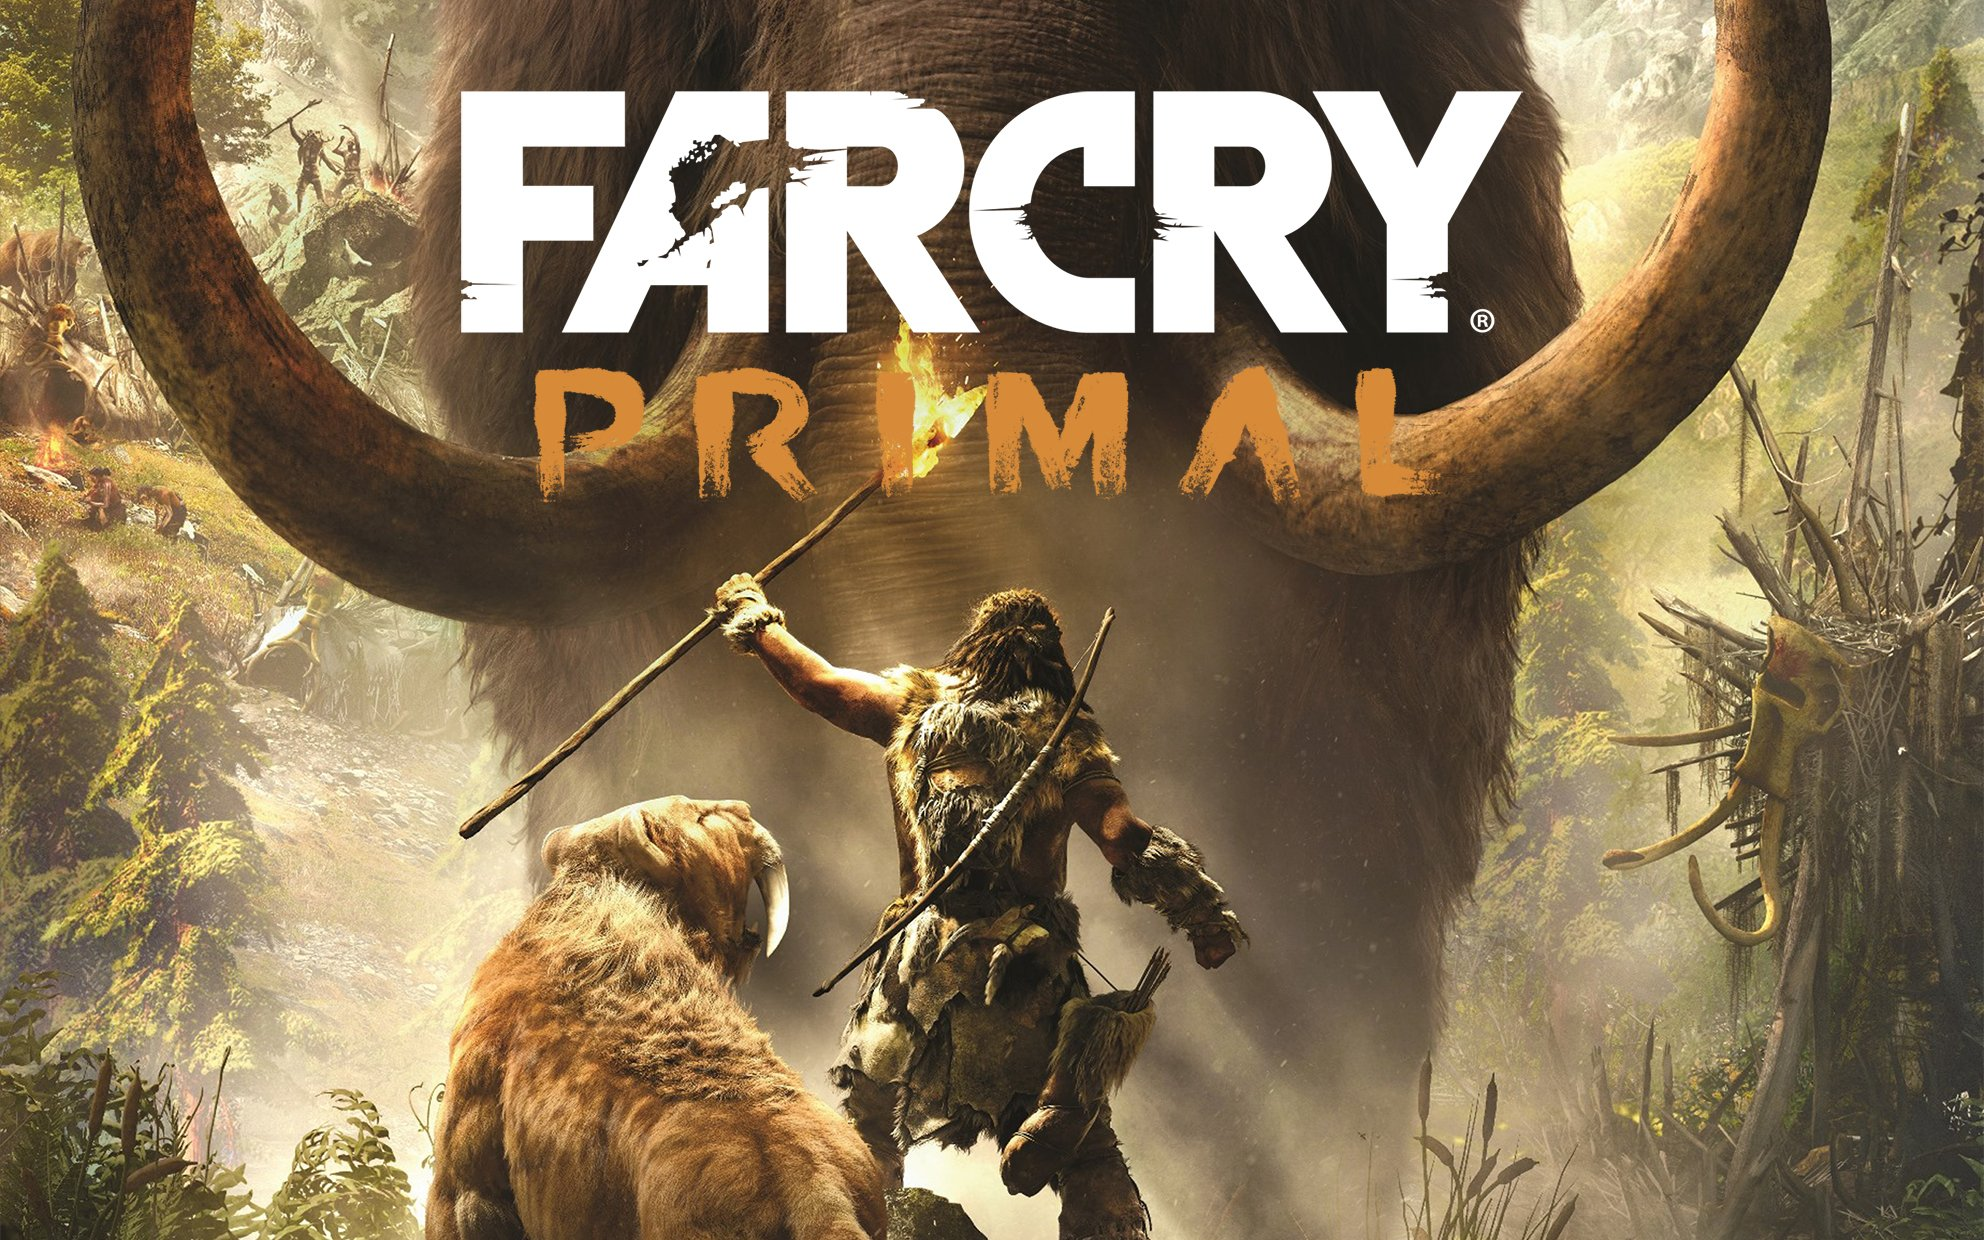 Primal Wallpapers Video Game Hq Primal Pictures 4k Wallpapers 2019